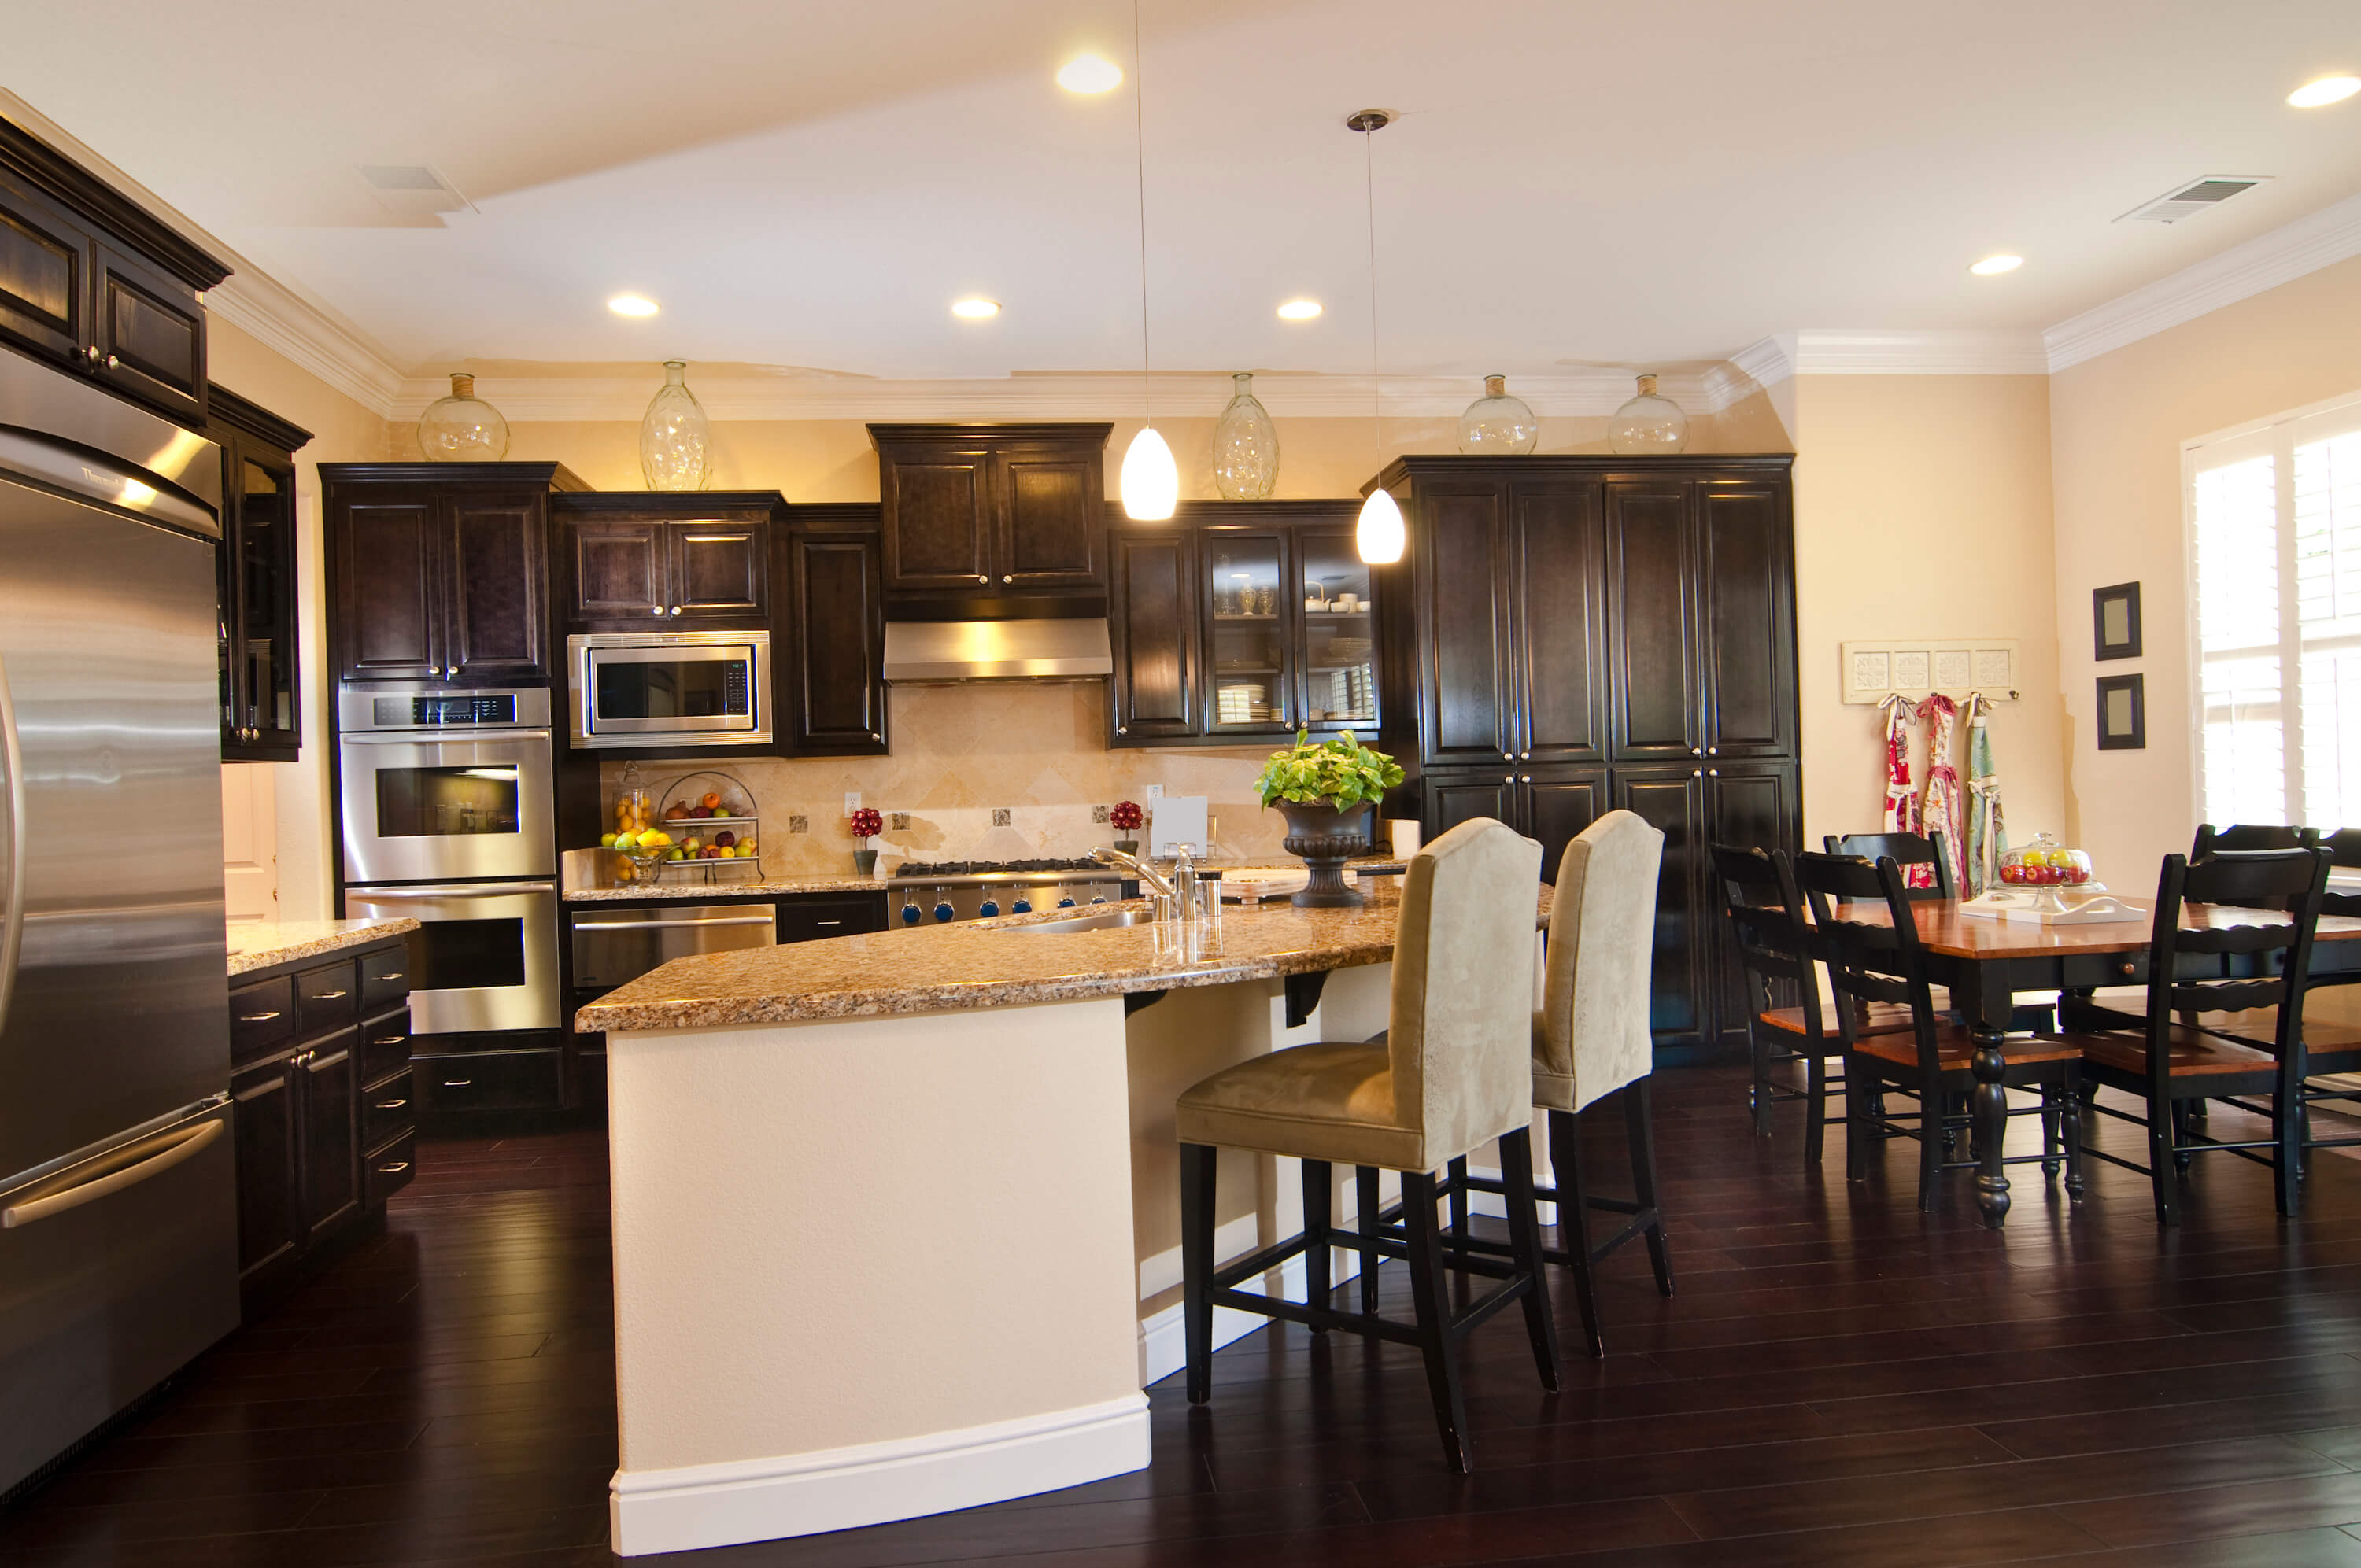 34 Kitchens with Dark Wood Floors (Pictures) on Maple Kitchen Cabinets With Dark Wood Floors Dark Countertops  id=69955